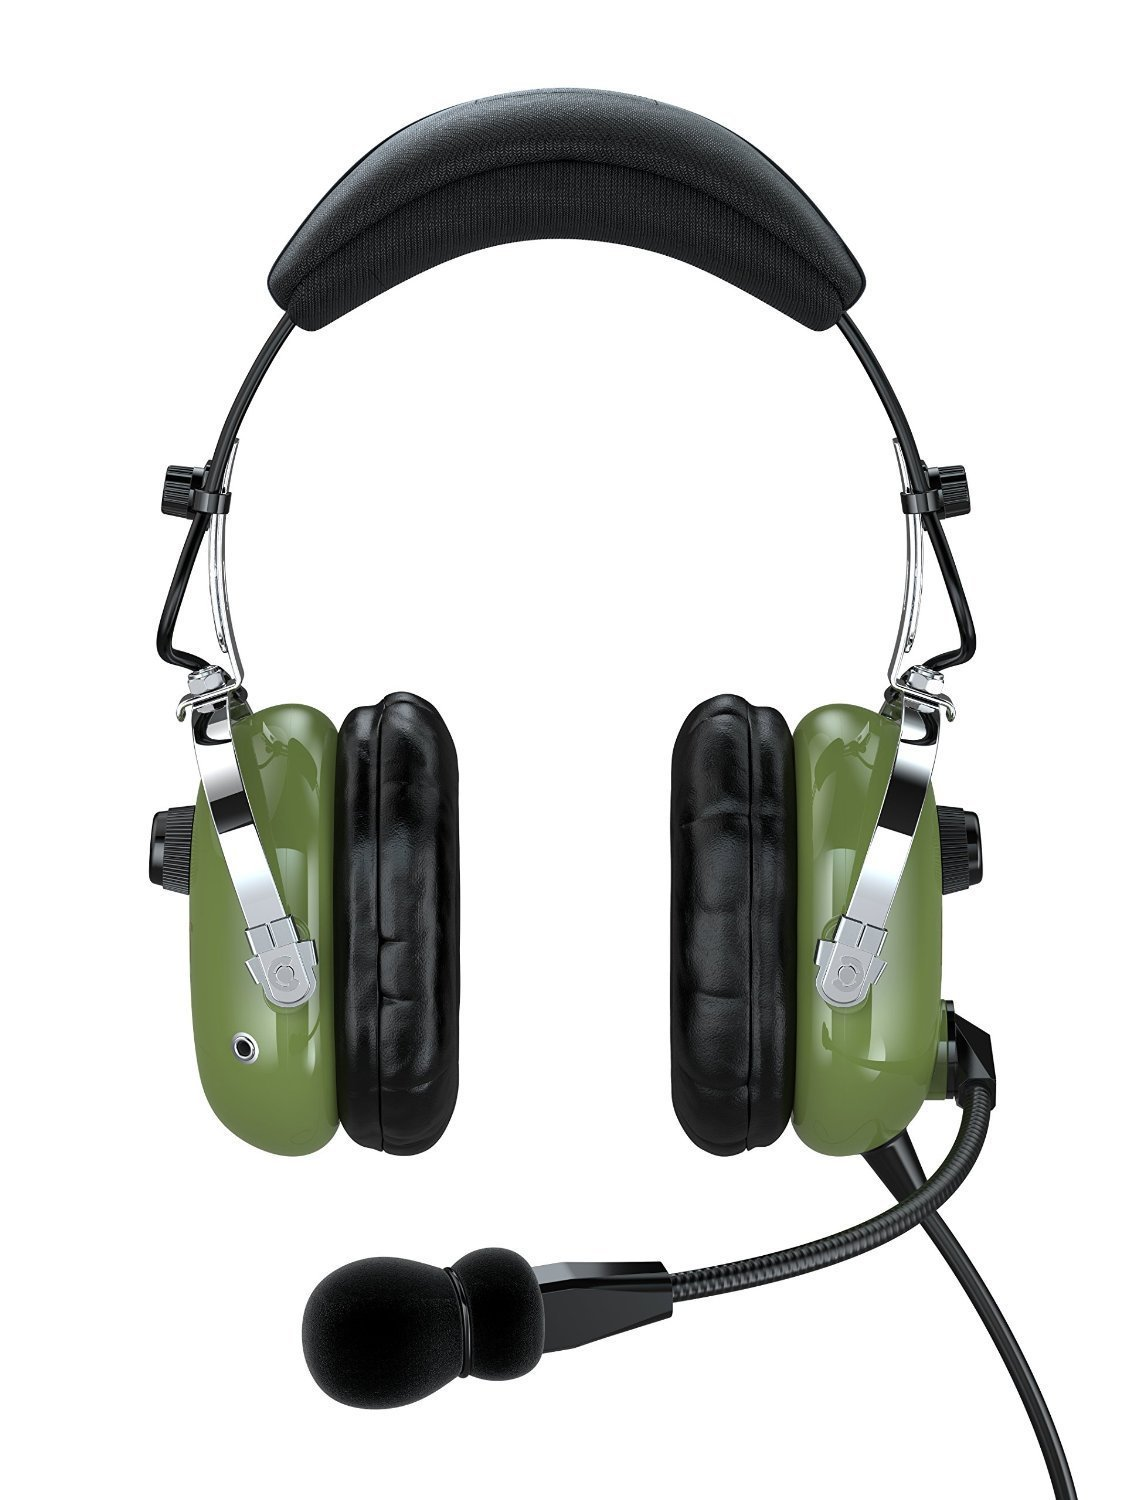 FARO G2 ANR (Active Noise Reduction) Premium Pilot Aviation Headset with Mp3 Input (Available adapters for aviation headset connectors, helicopter adapter, universal pilot headset, standard dual GA adapter universal support) - Green by FARO